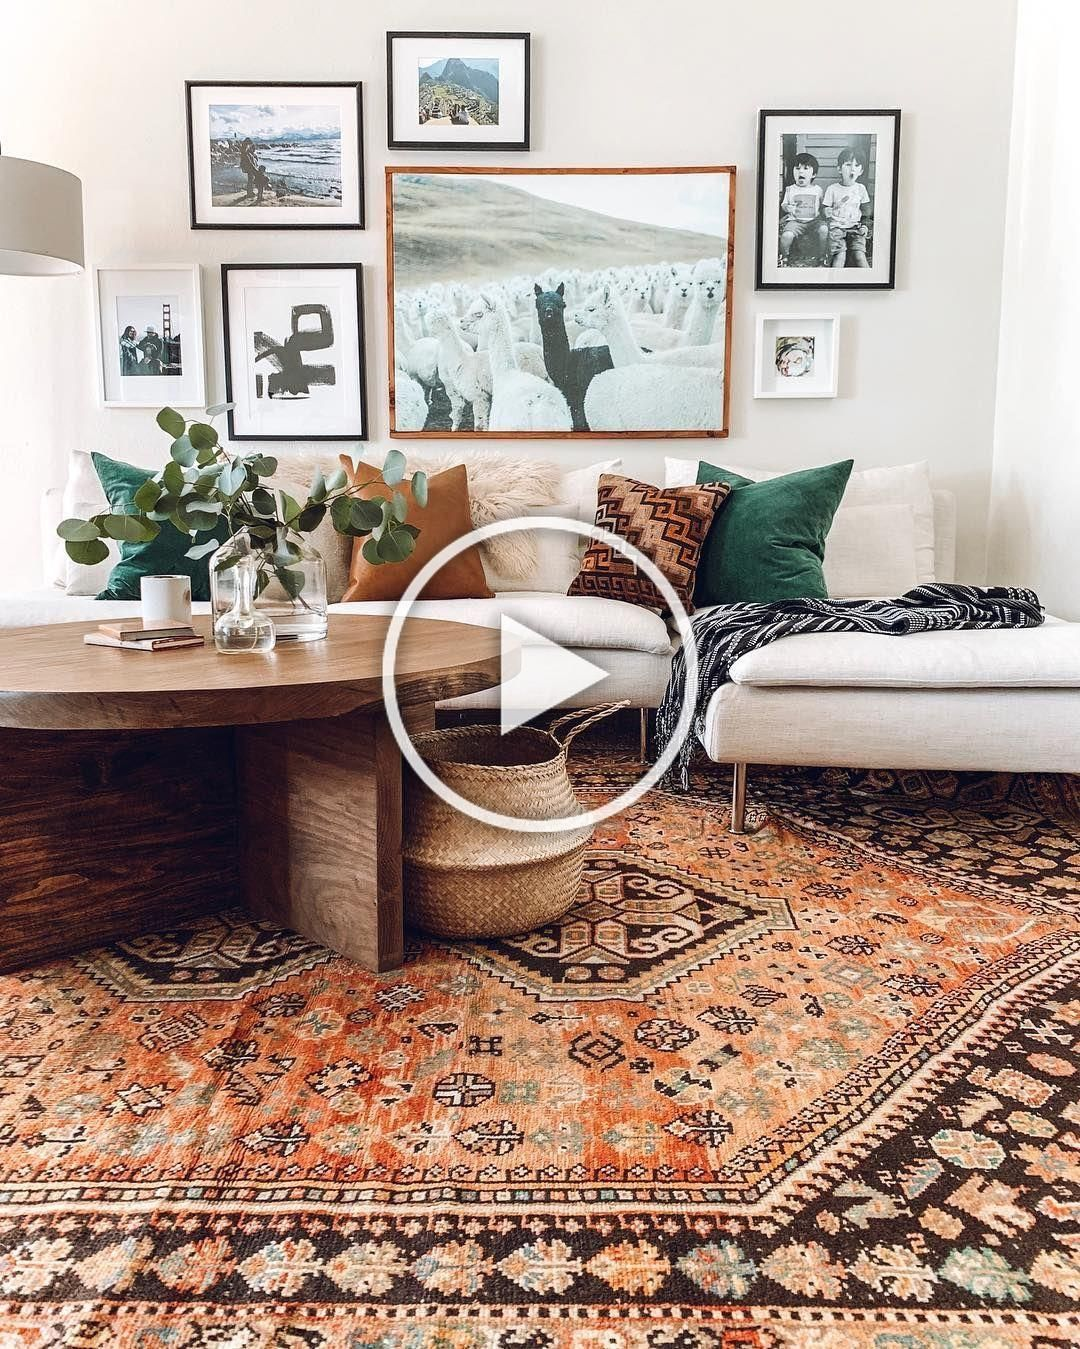 Vintage industrial style decor trends to make a lasting impression in your guests! #homeideas #interiordesign #homedecor #interiordecorating #interiordecor #vintageindustrialstyle #vintageindustrialdecor #vintagestyle #industrialdecor #industrialloft